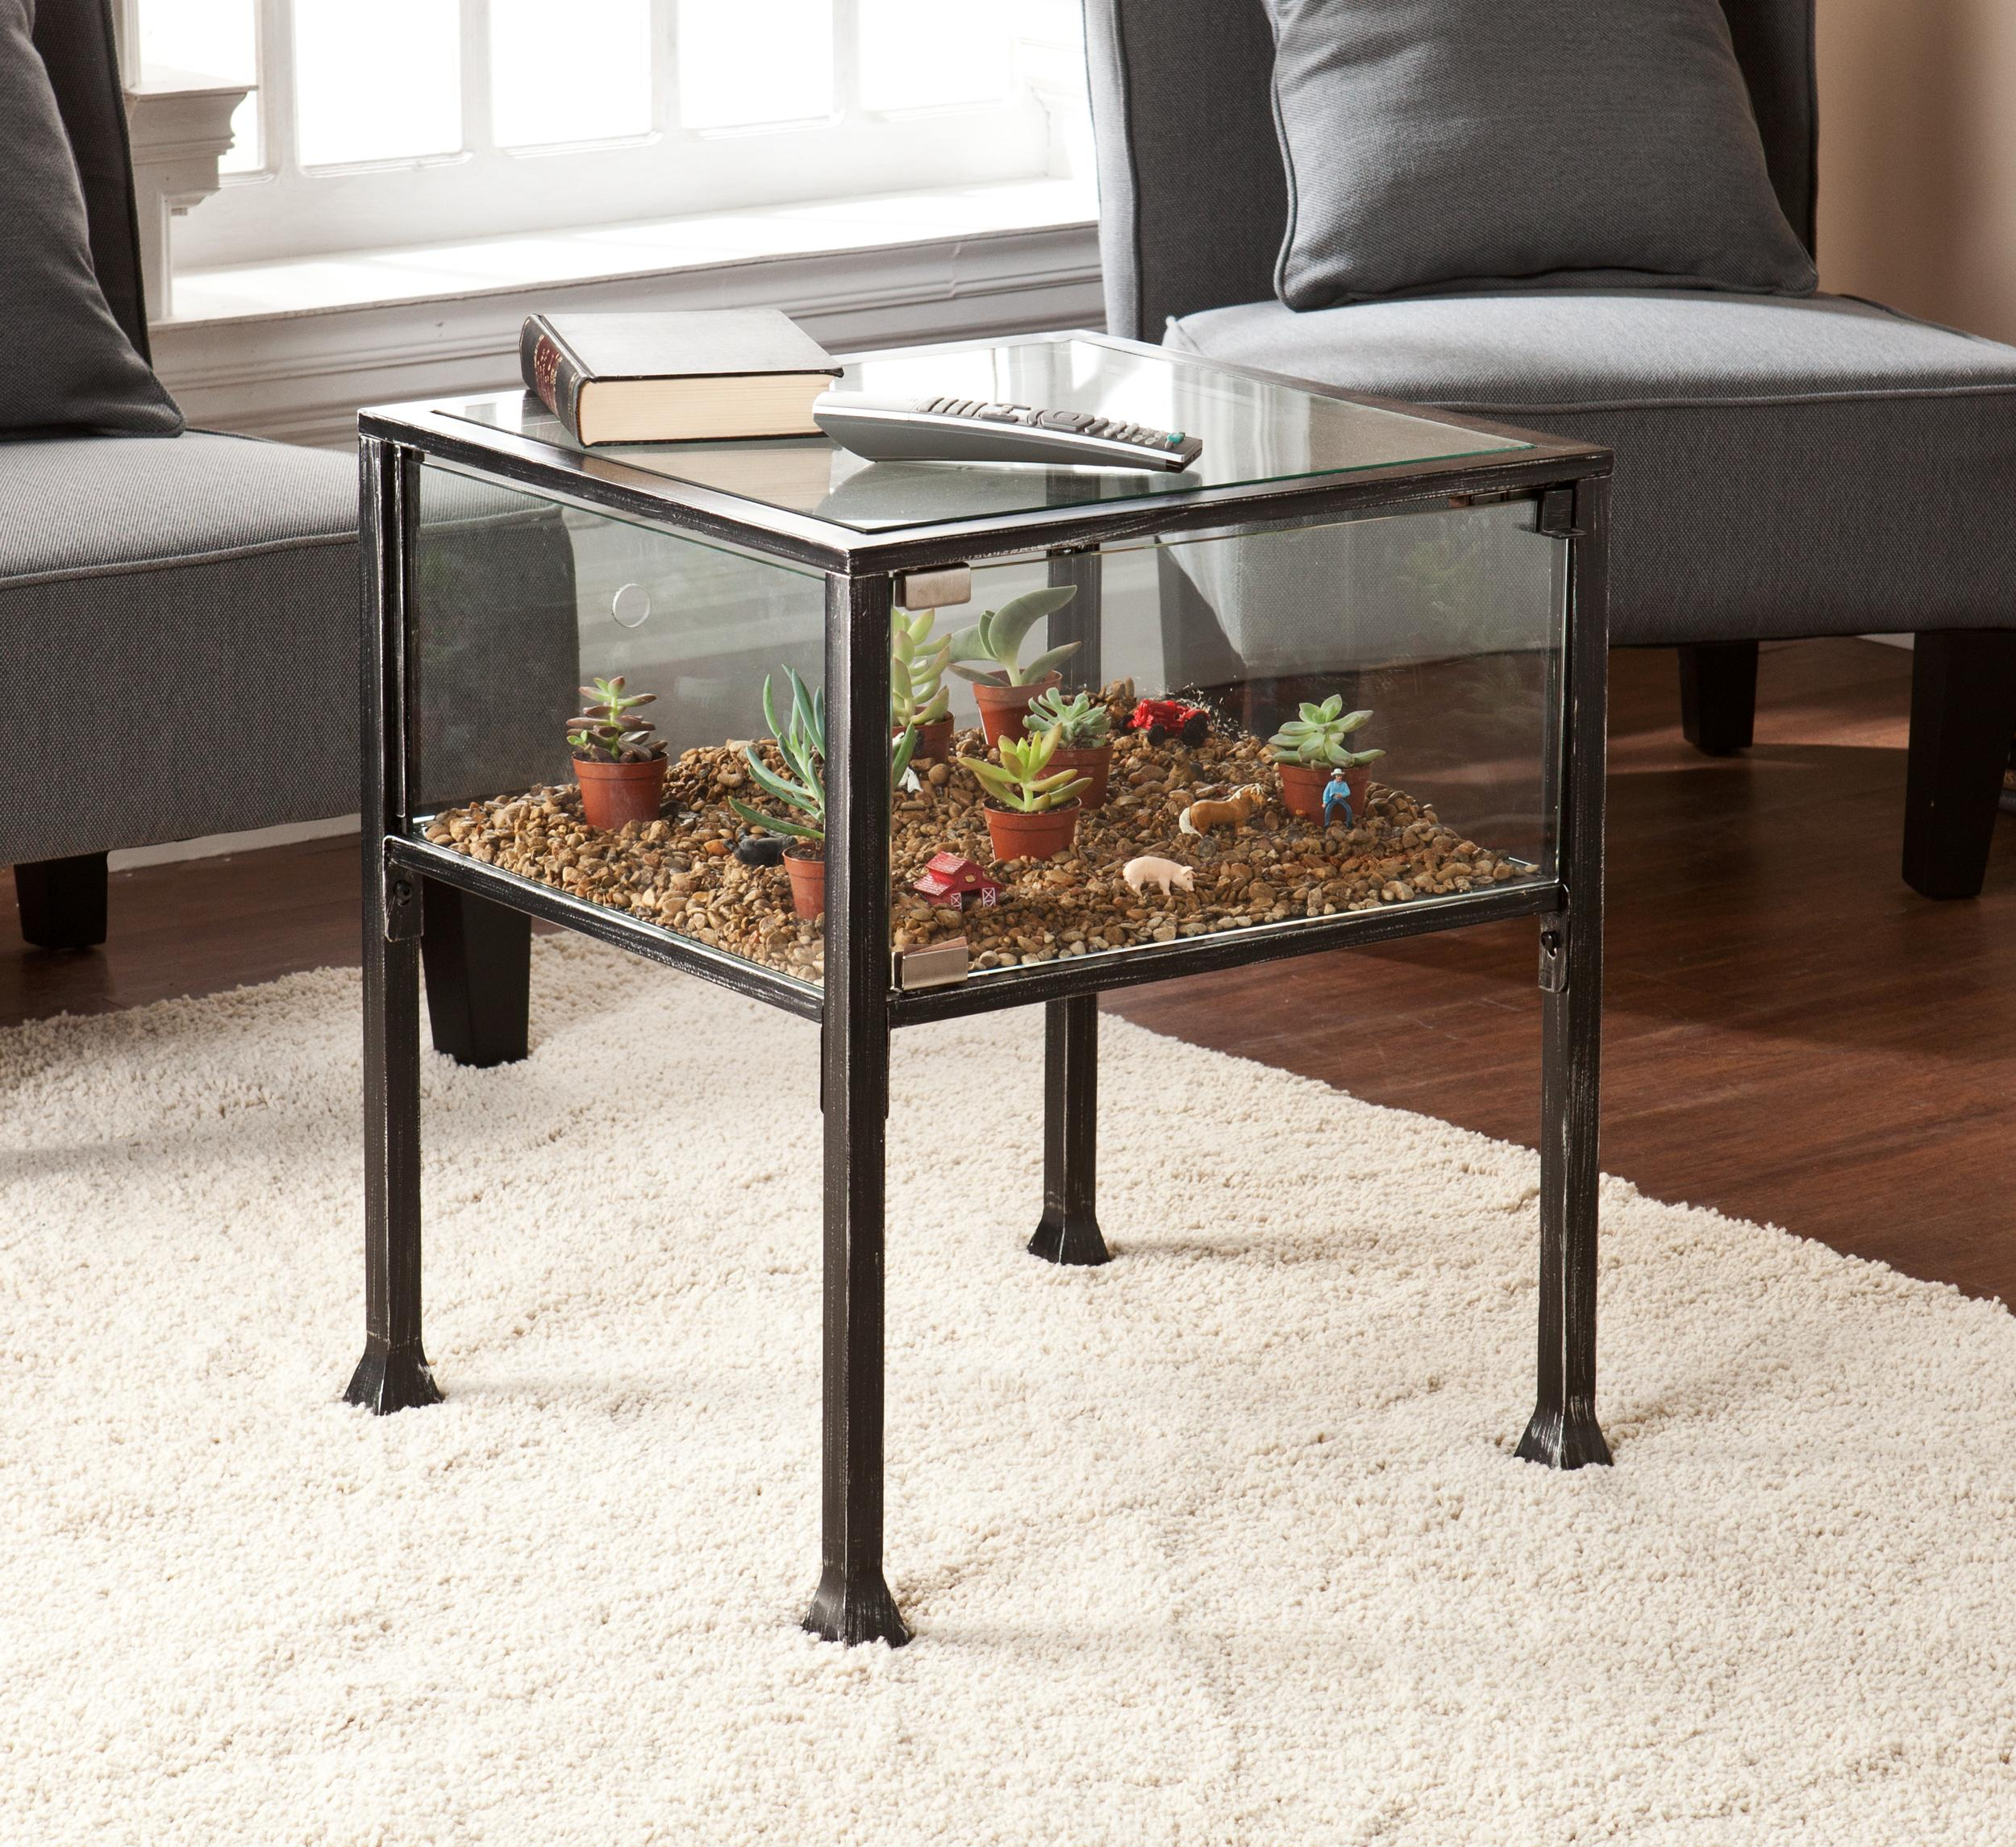 Kitchen Side Table: Amazon.com: Southern Enterprises Terrarium Display Side